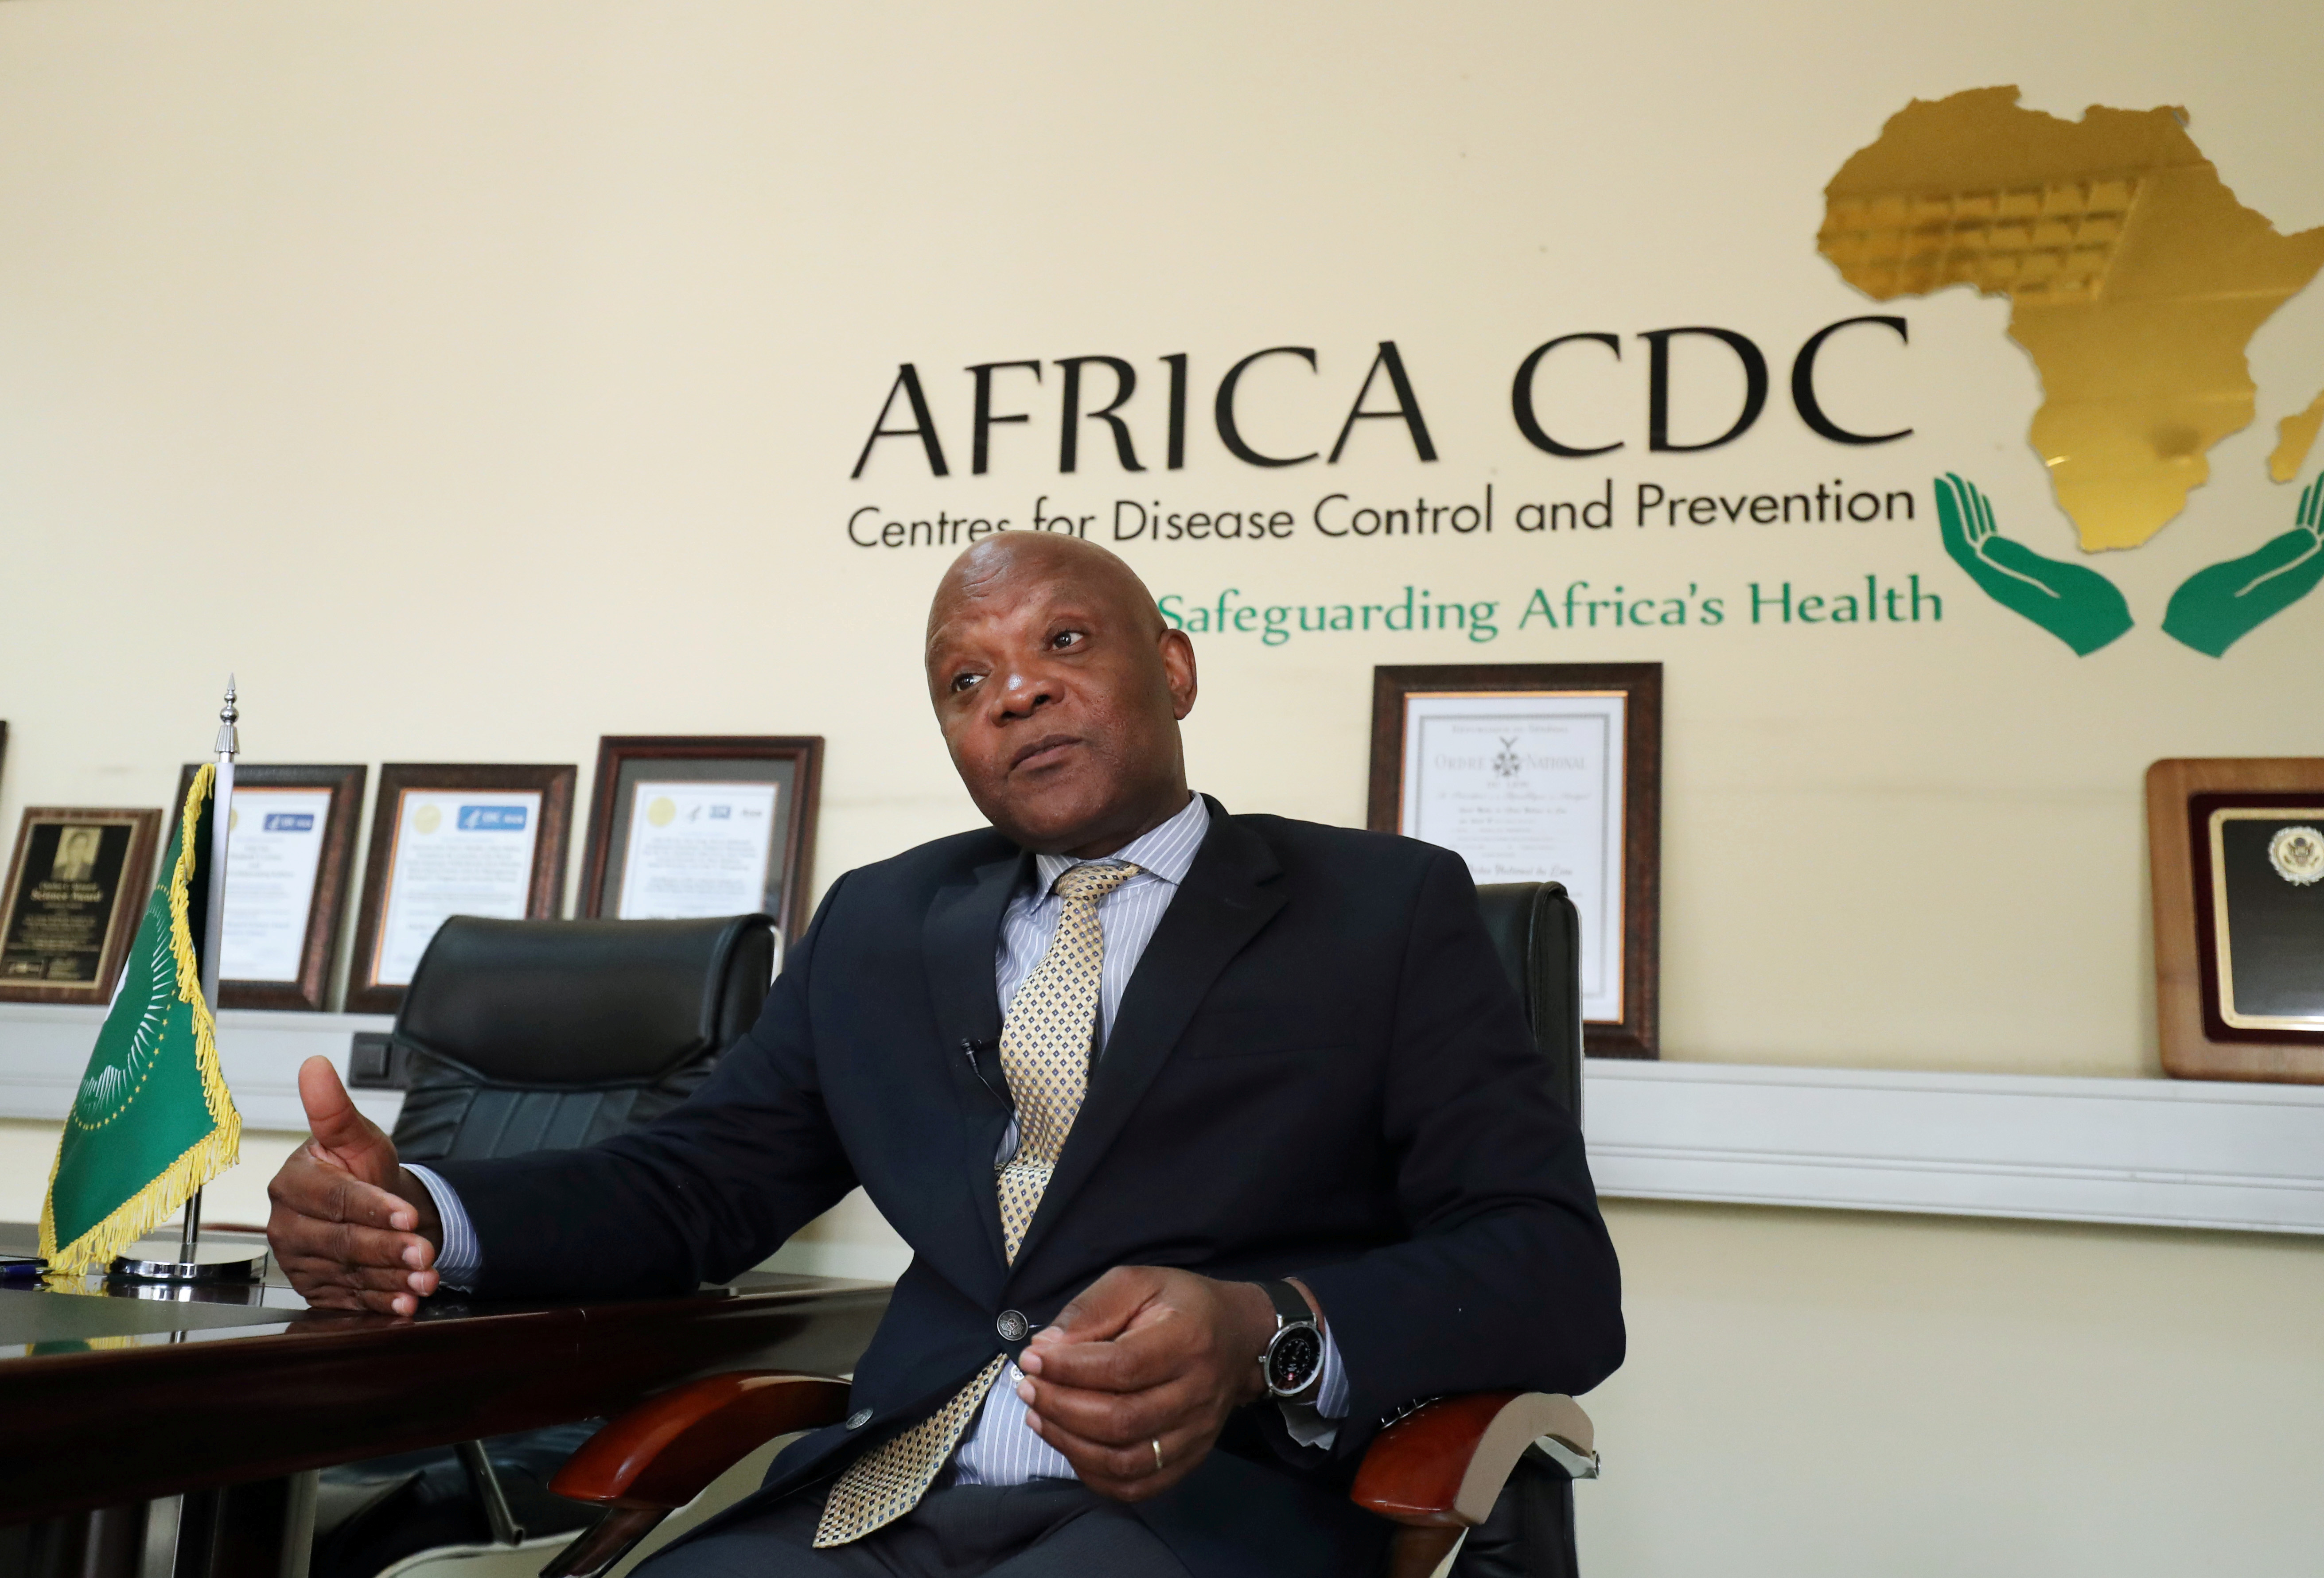 John Nkengasong, Africa's Director of the Centers for Disease Control (CDC), speaks during an interview with Reuters at the African Union (AU) Headquarters in Addis Ababa, Ethiopia March 11, 2020. Picture taken March 11, 2020. REUTERS/Tiksa Negeri